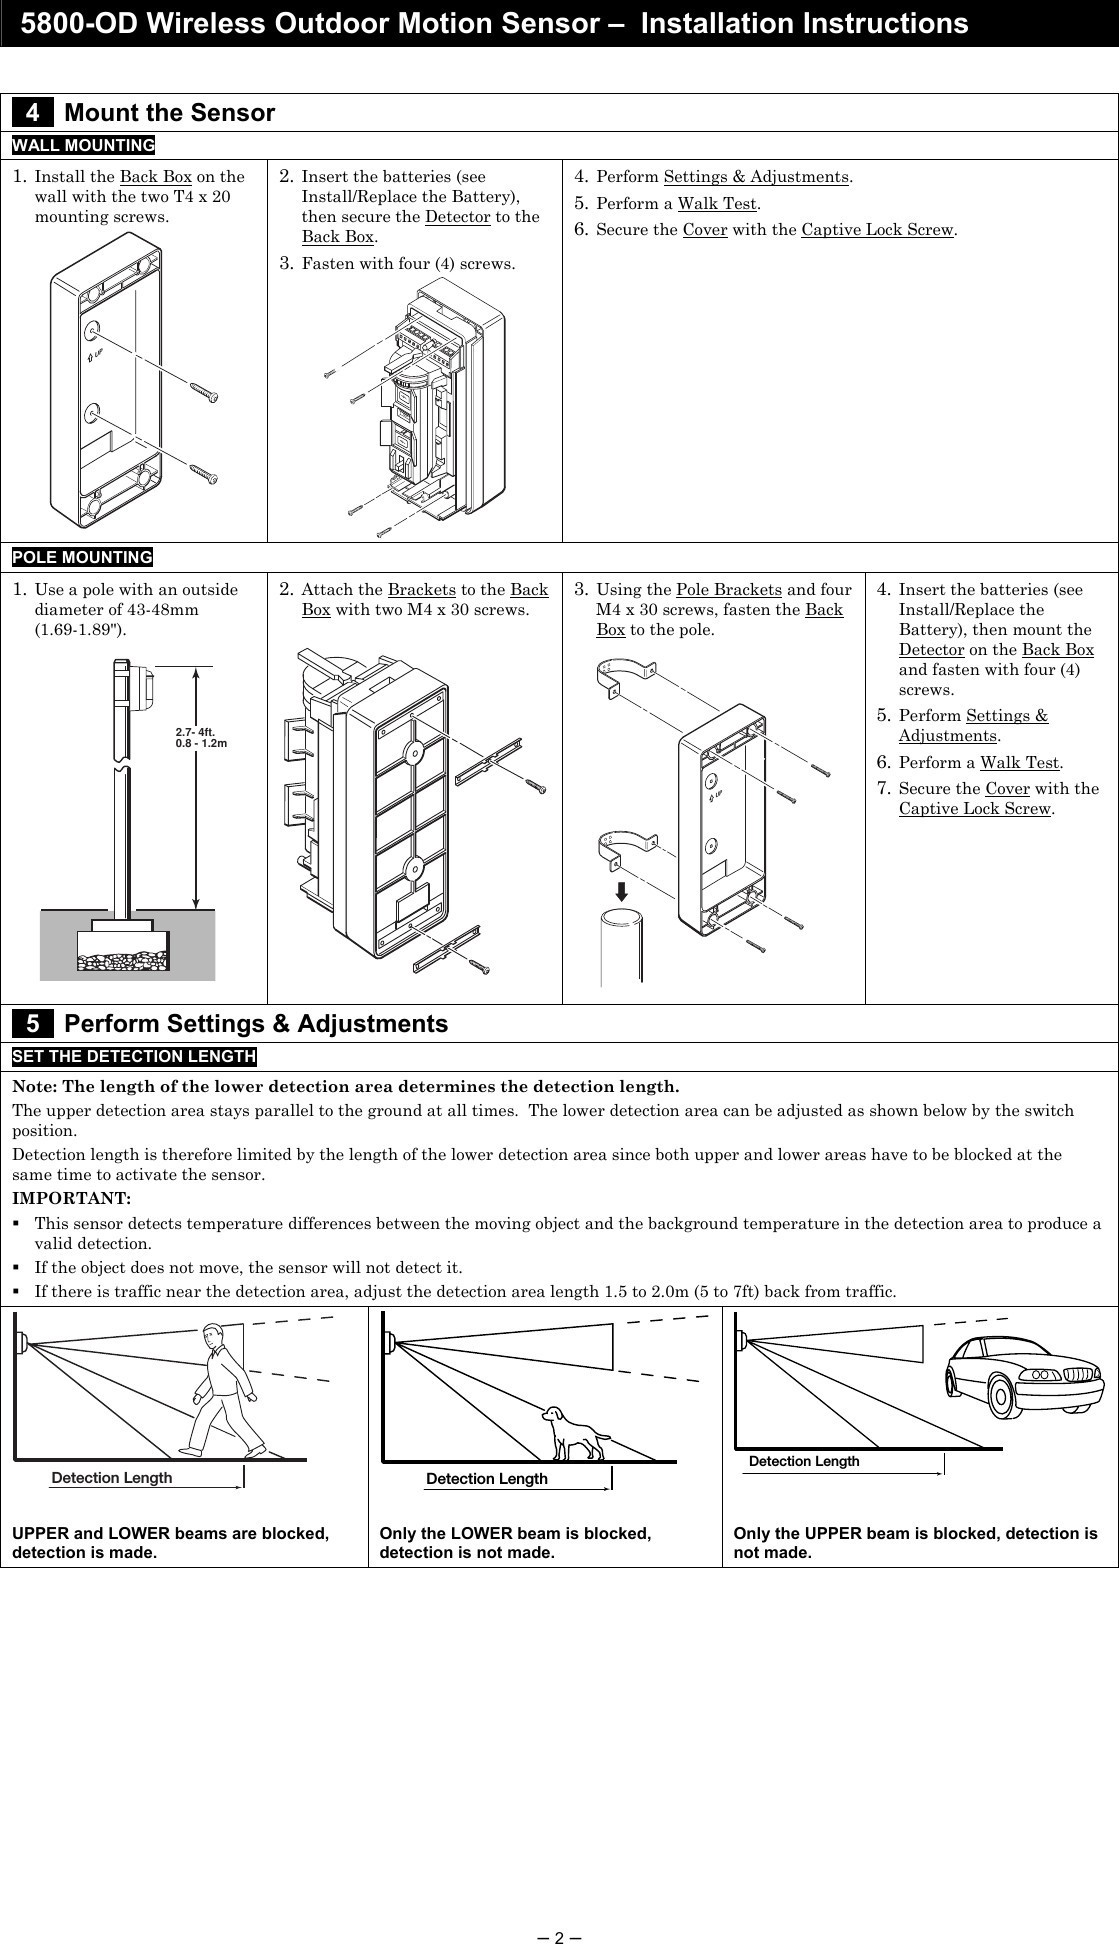 Wiring Diagram for Pir Security Light New Wiring Diagram for Alarm Pir Refrence 8dl5800pir Od Security